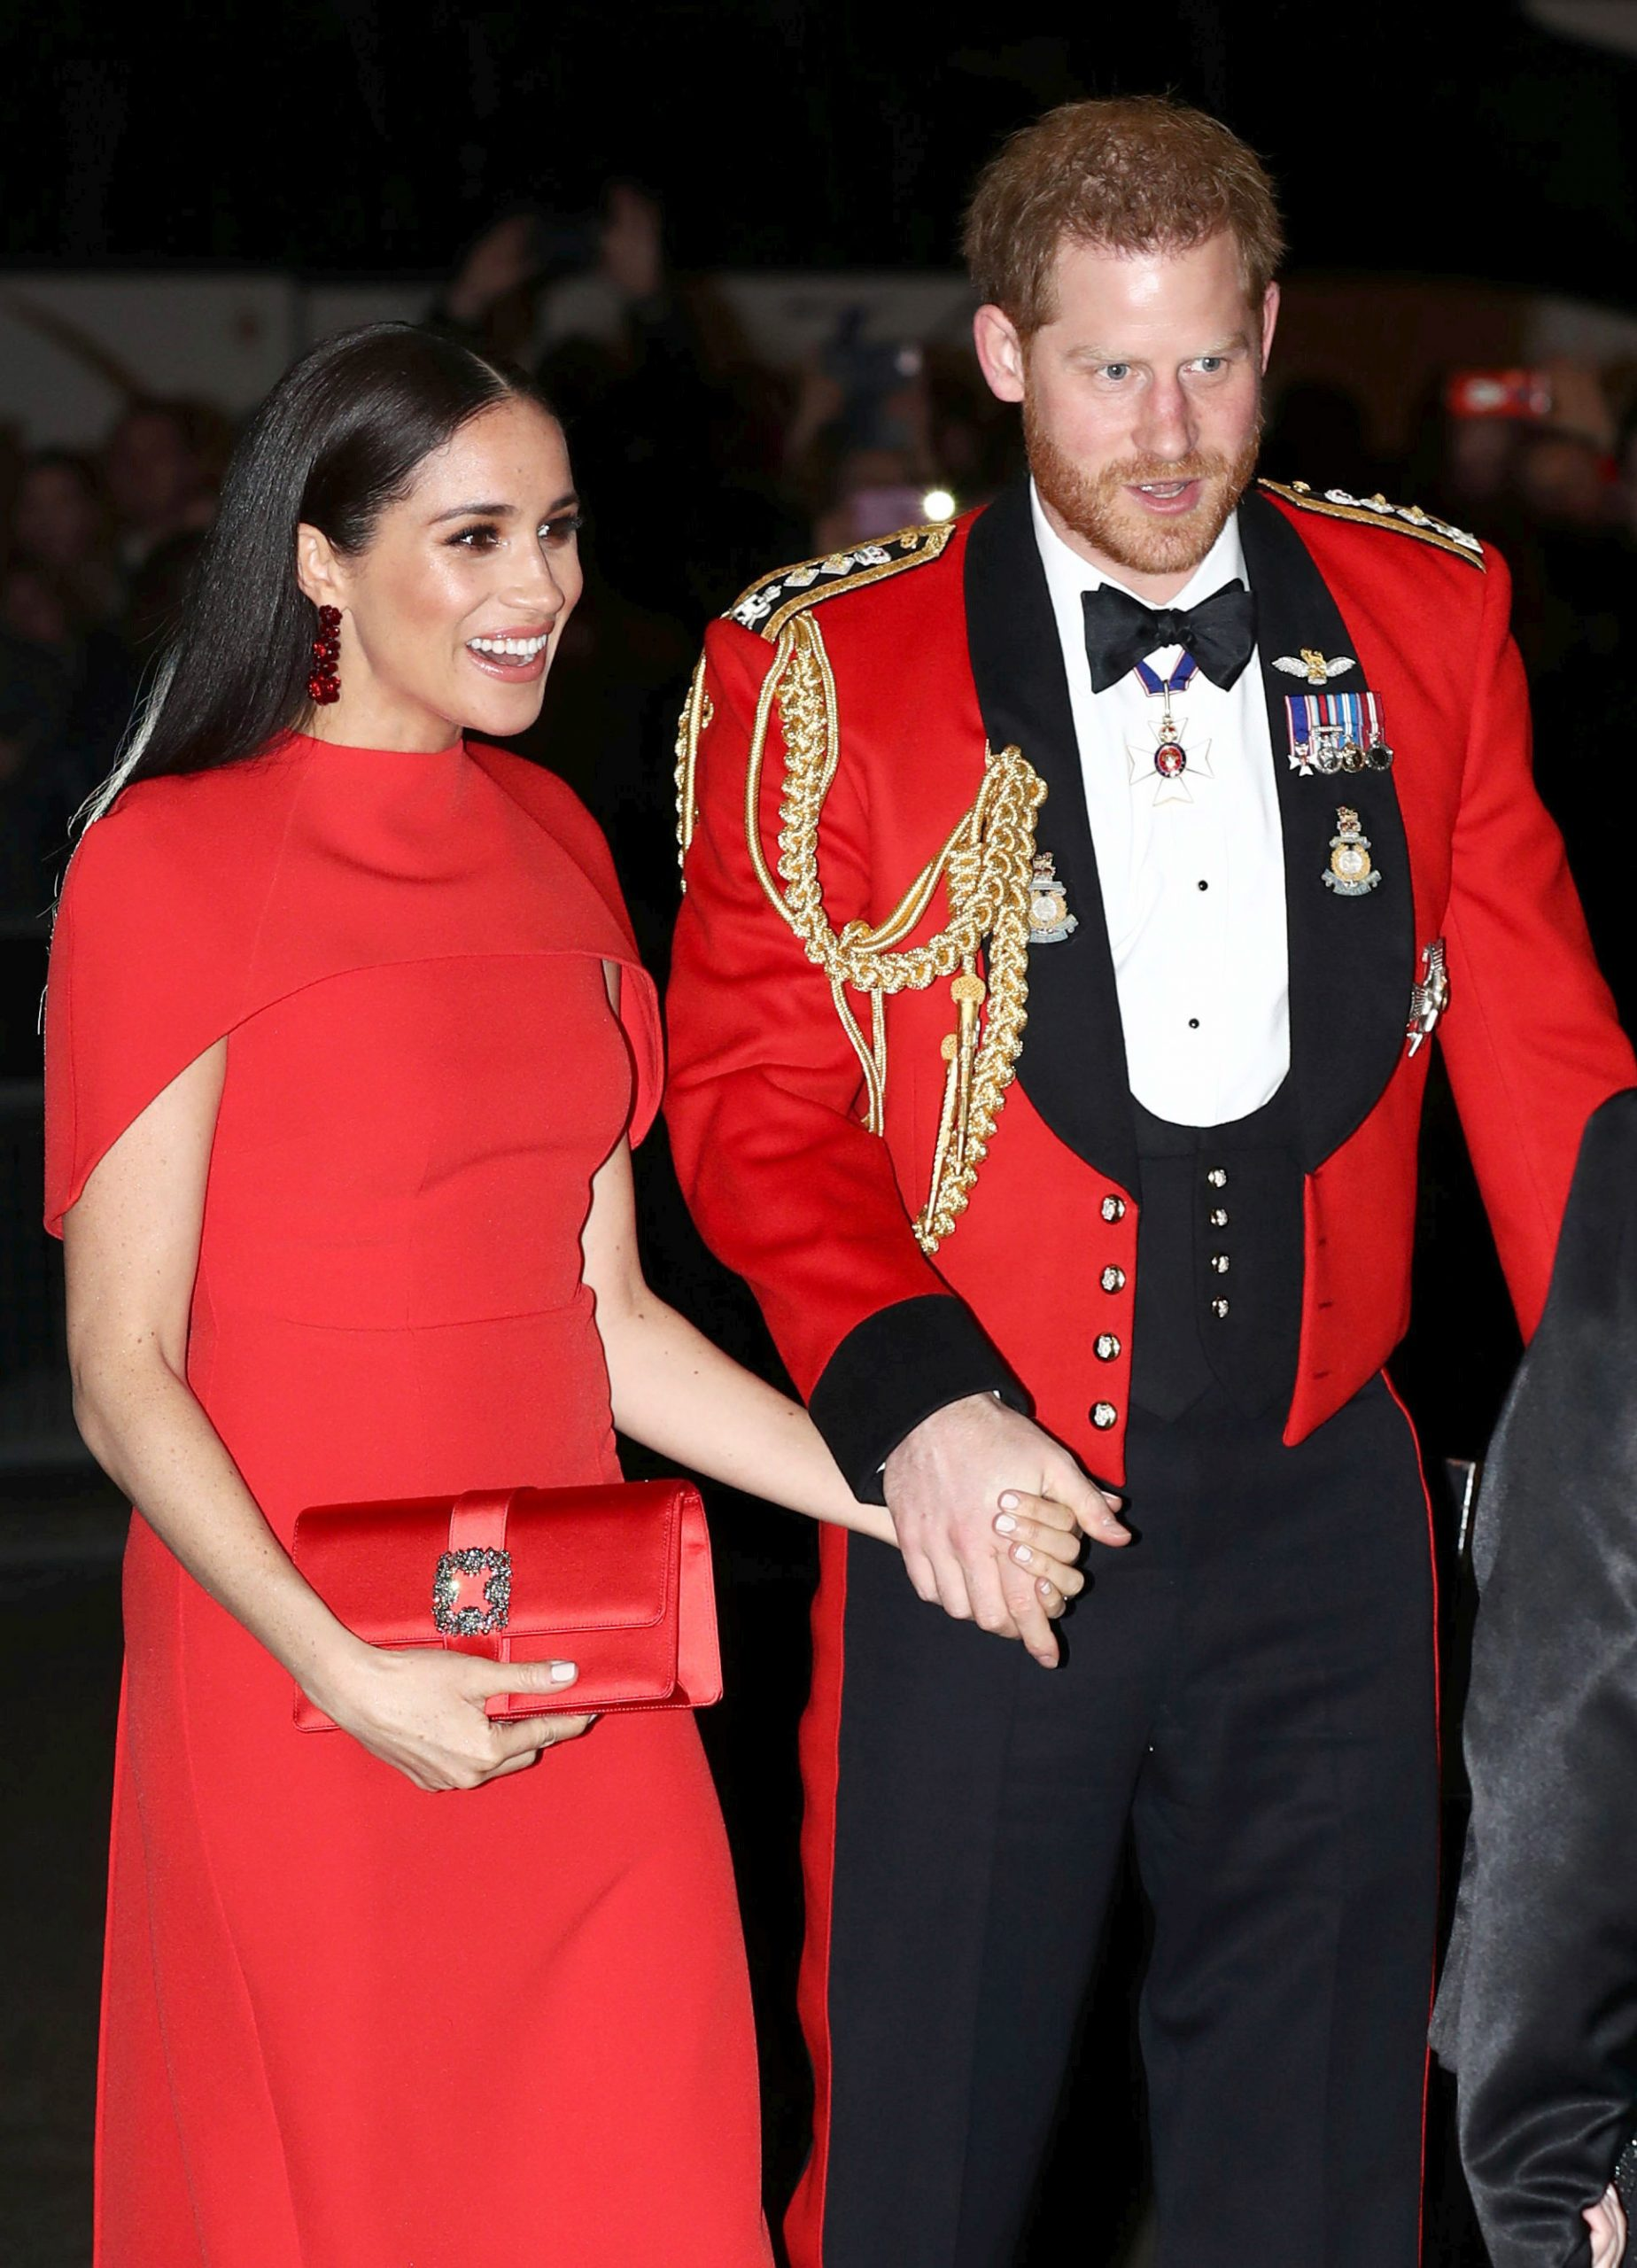 Prince Harry Duke of Sussex and Meghan Markle